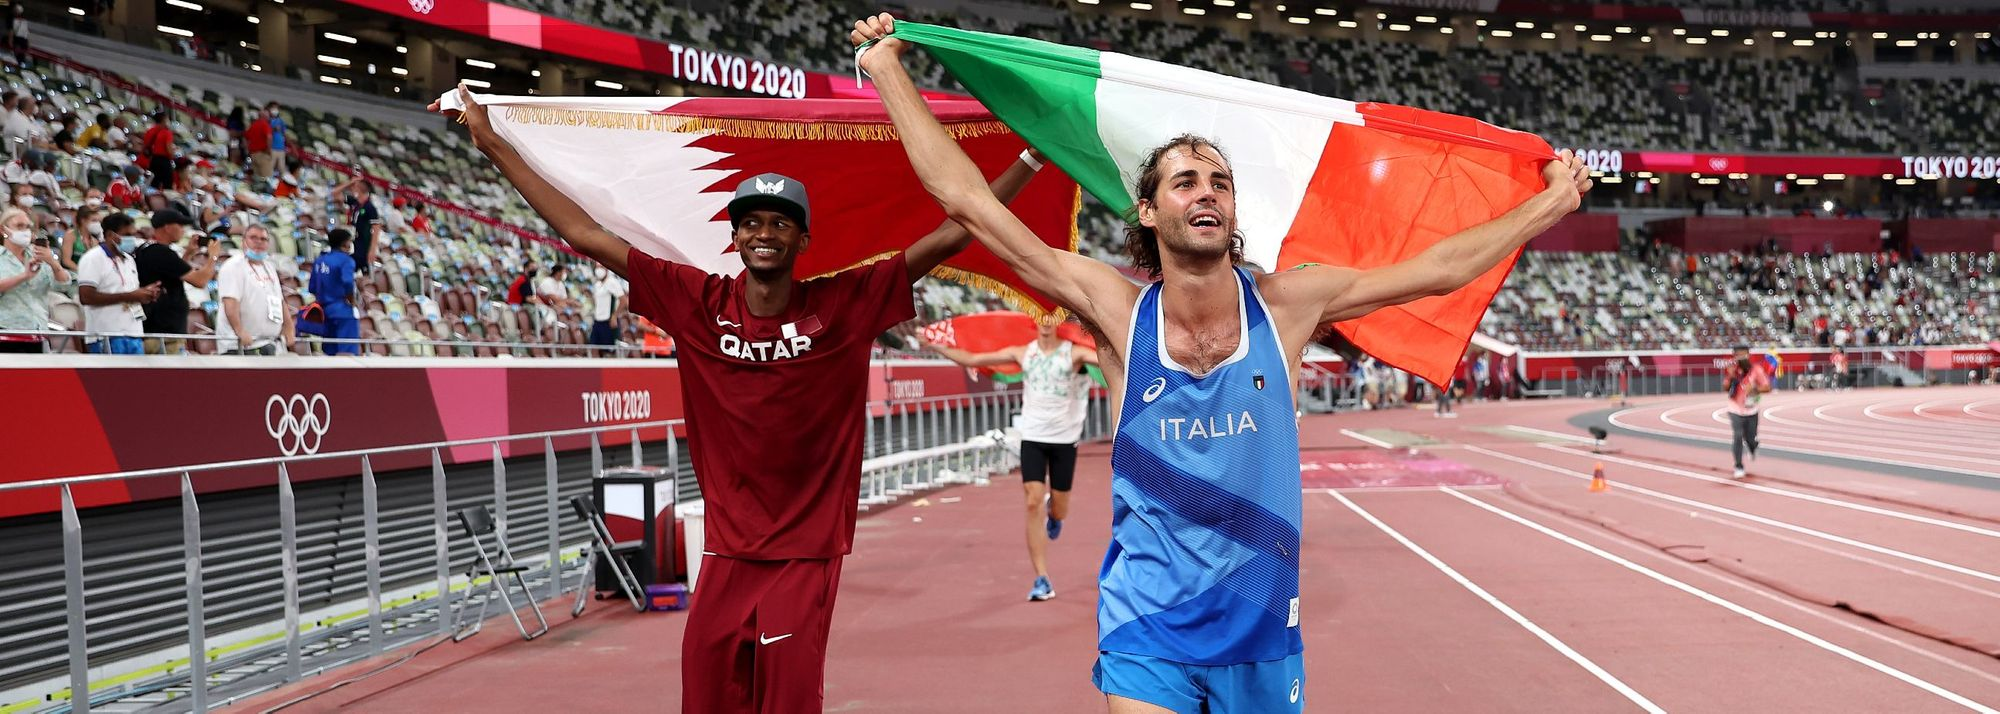 The finest high jump duel in Olympic history ended with Mutaz Barshim and Gianmarco Tamberi both getting gold.